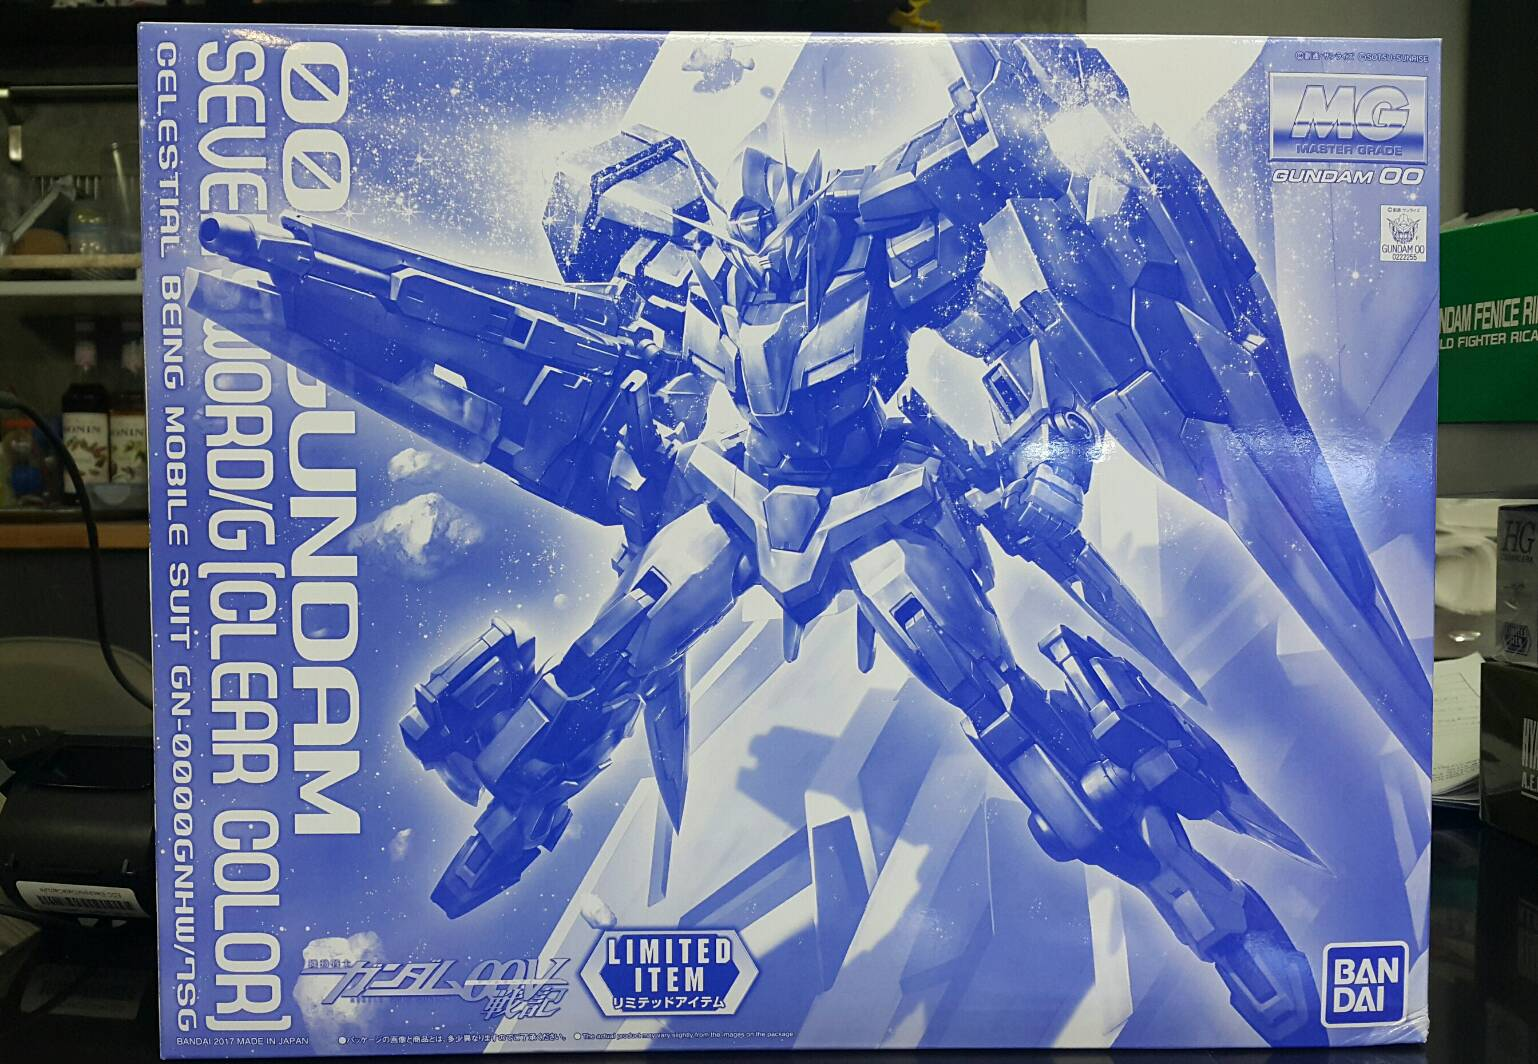 Limited EXPO Osaka MG 1/100 OO Seven Sword/G [Clear Ver]